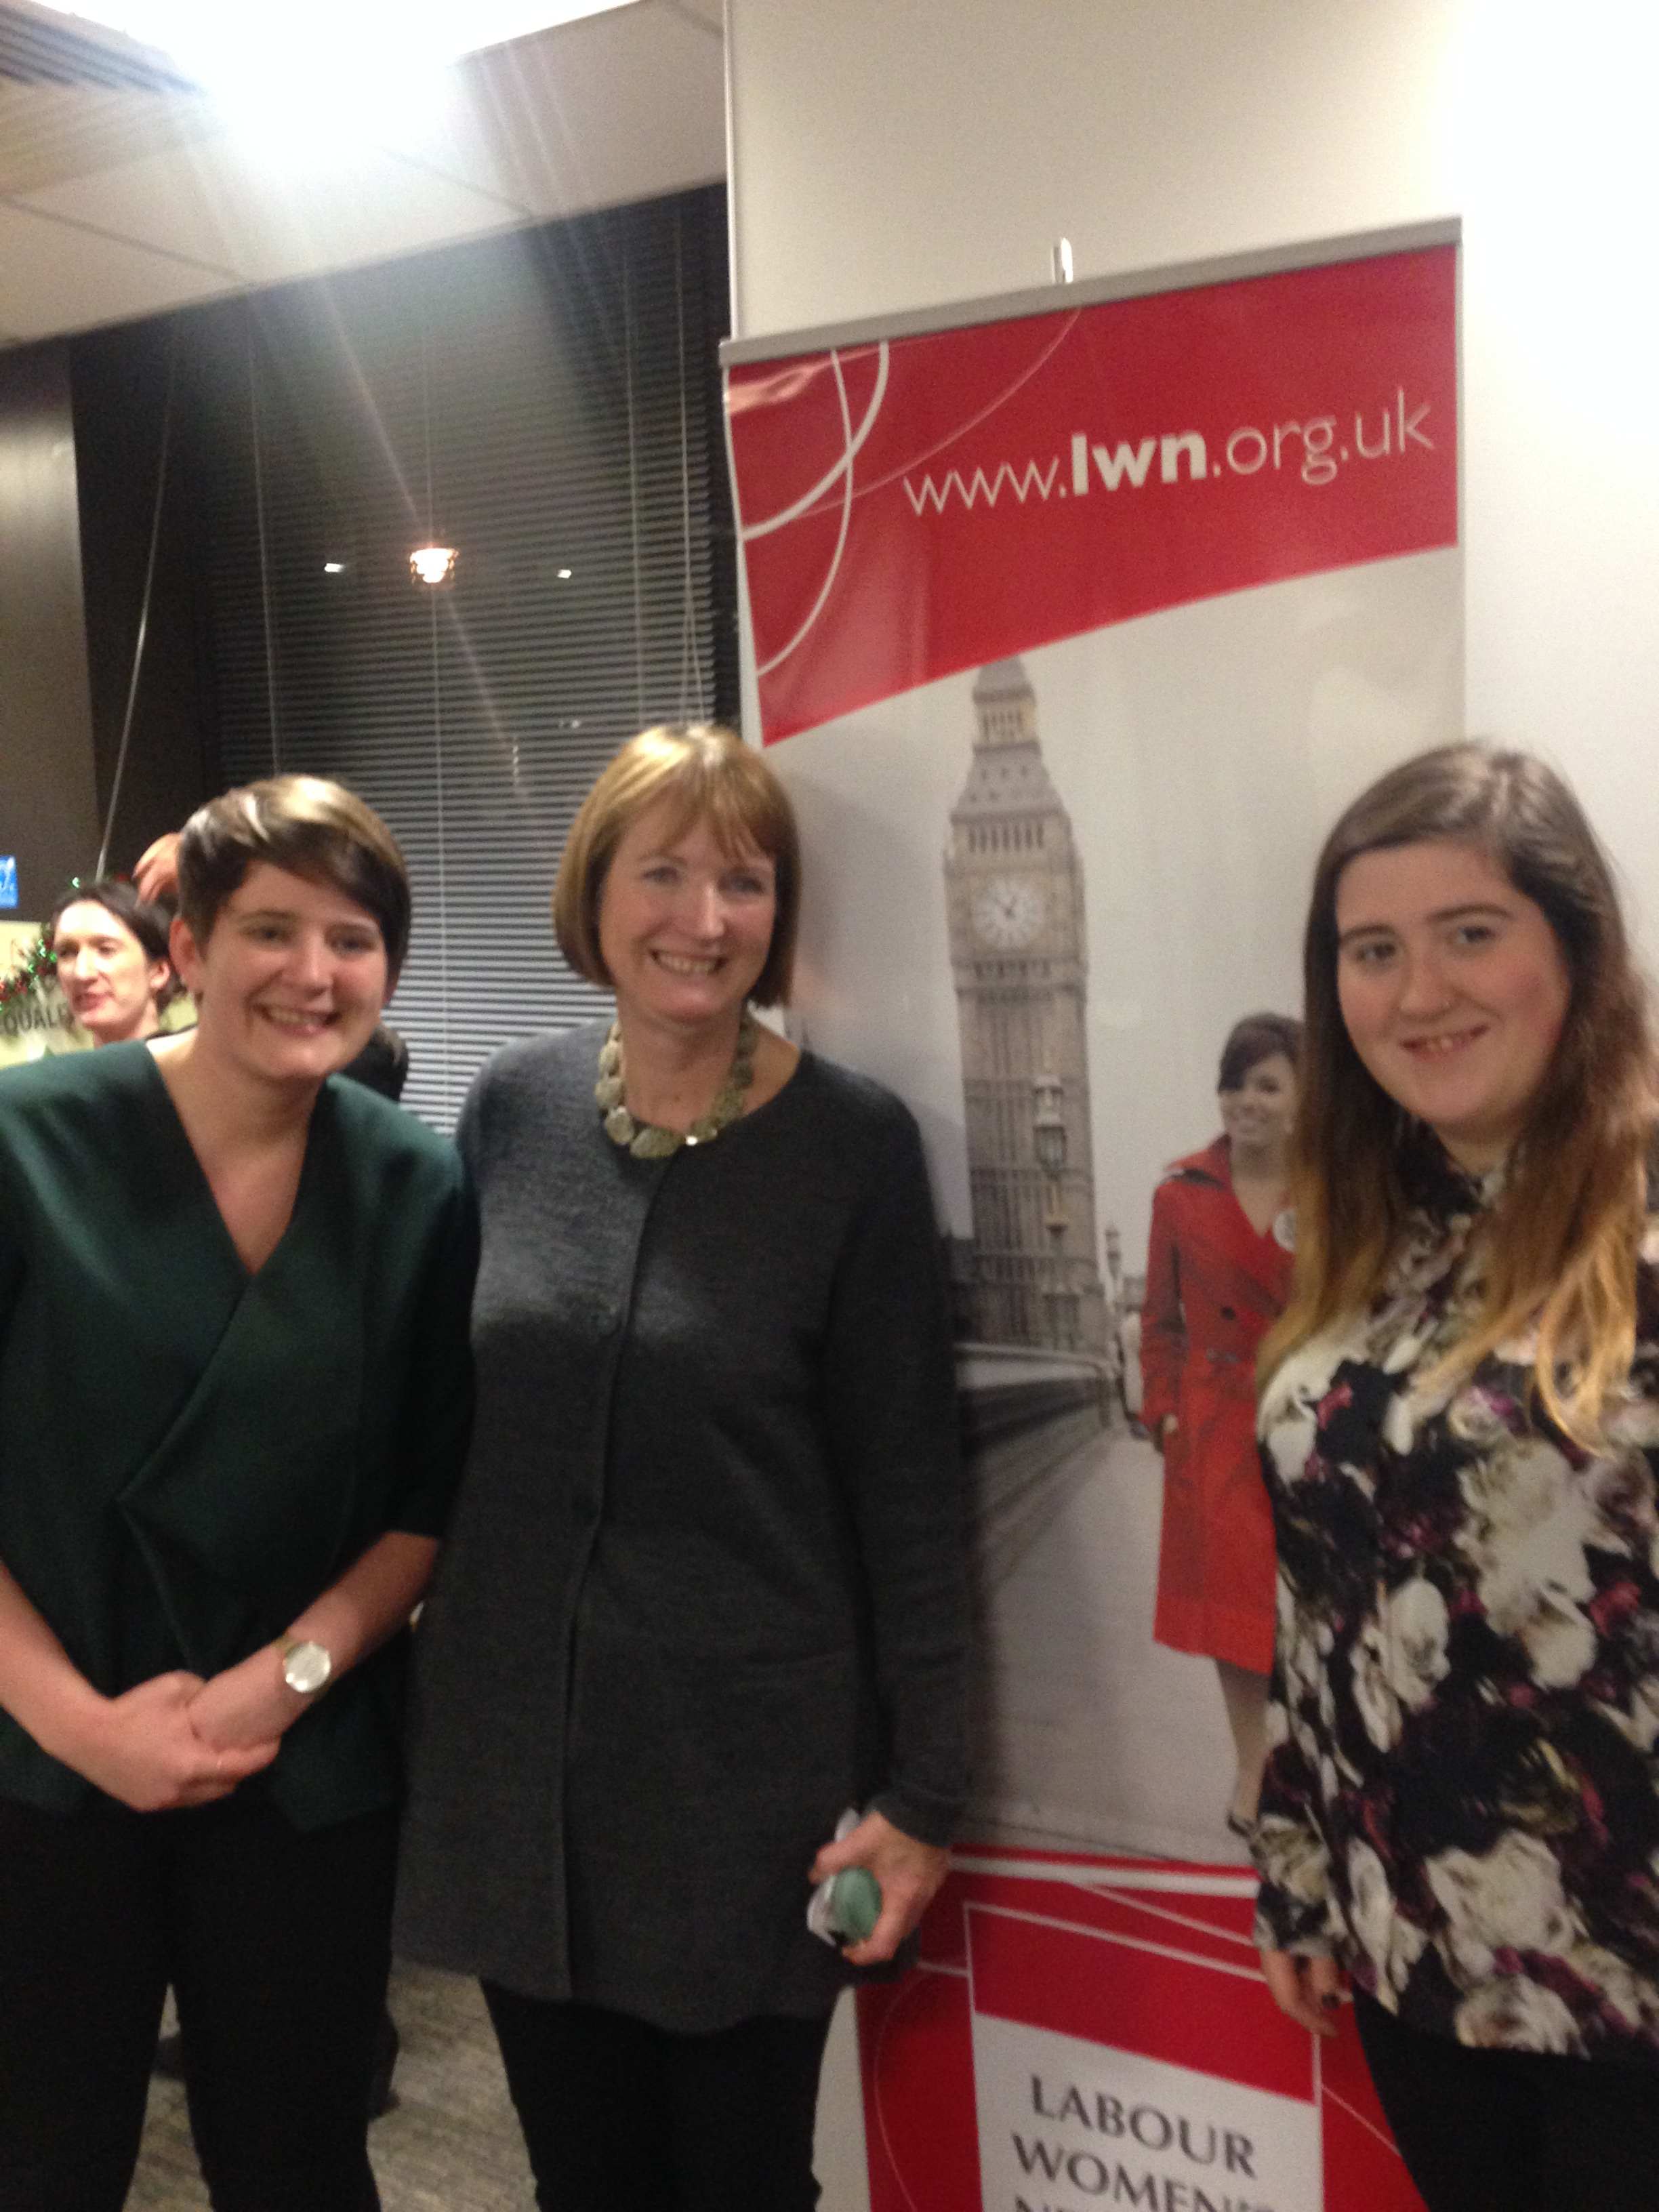 Labour_Womens_Network_Drinks_Dec_15.JPG